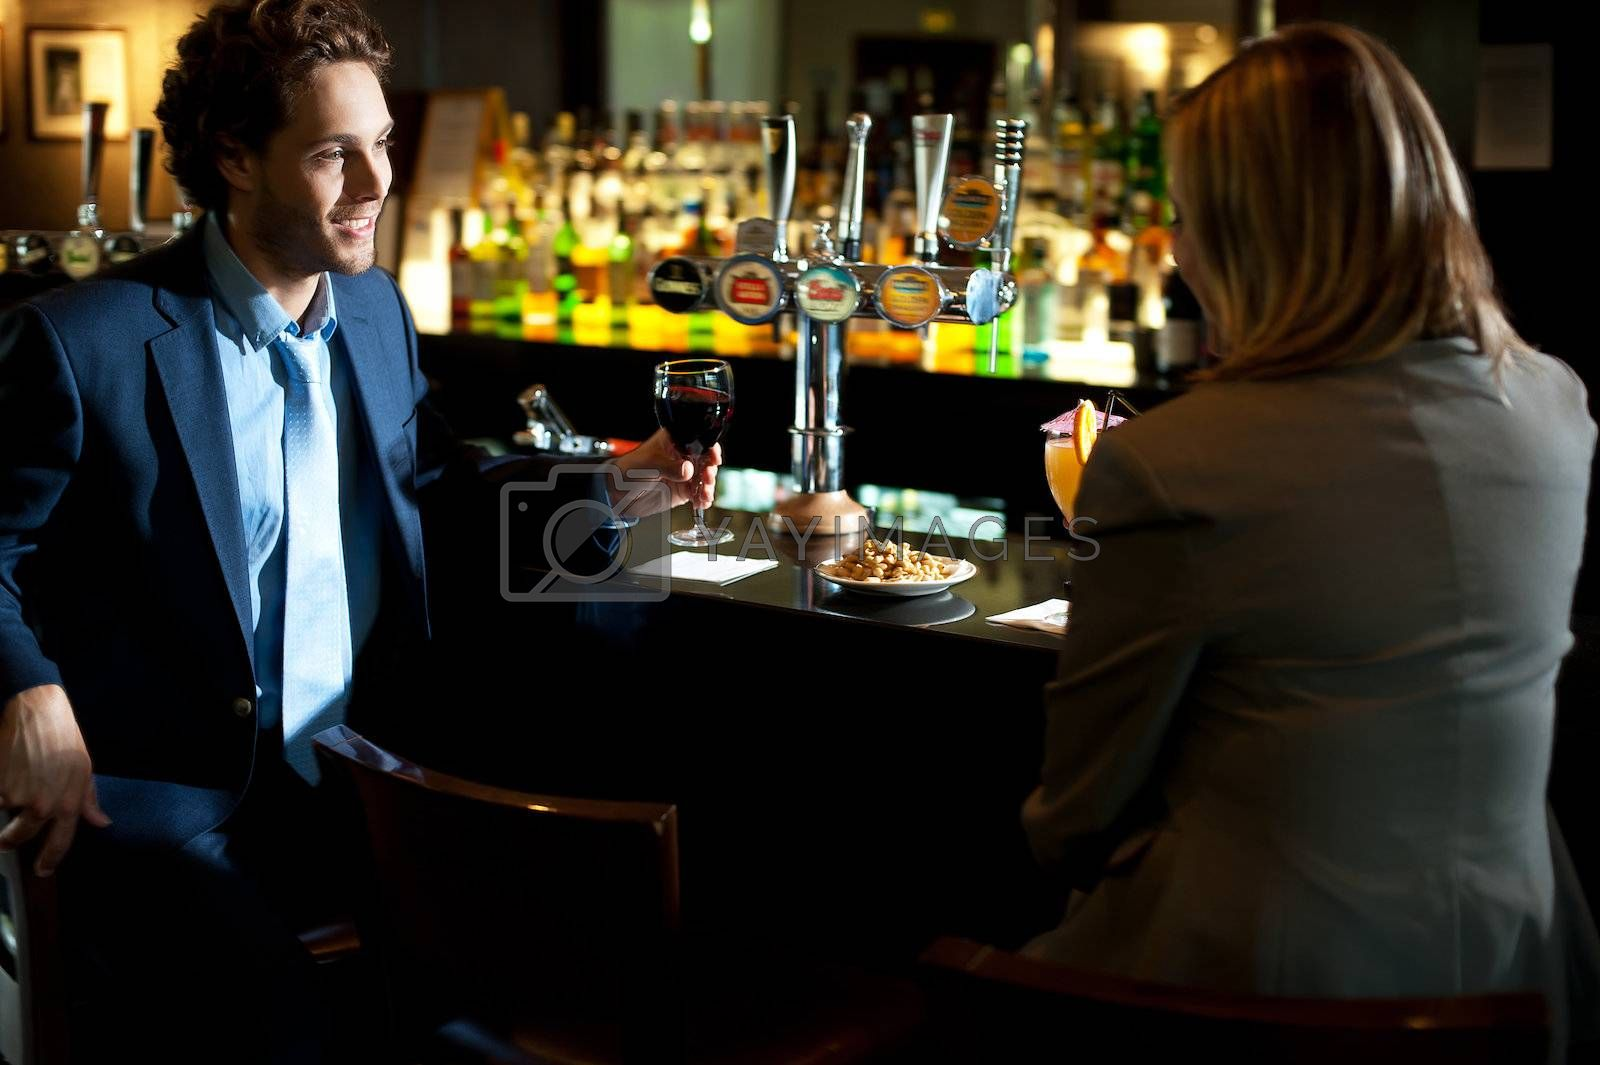 Attractive couple refreshing themselves at the bar. Enjoying drinks